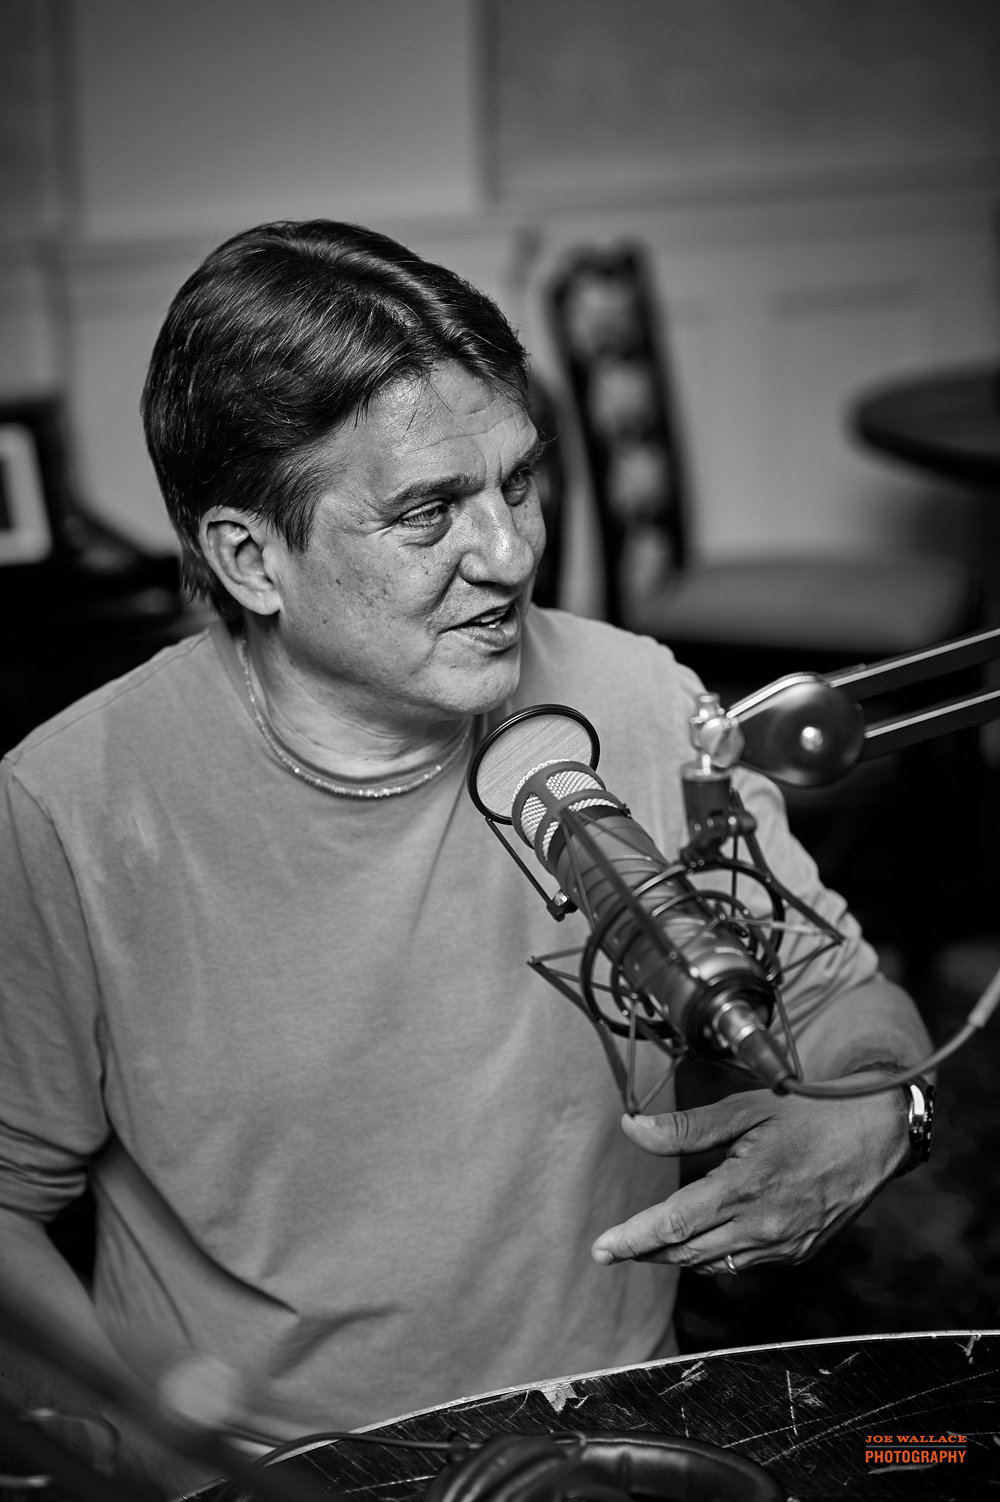 A conversation with Keith Lockhart